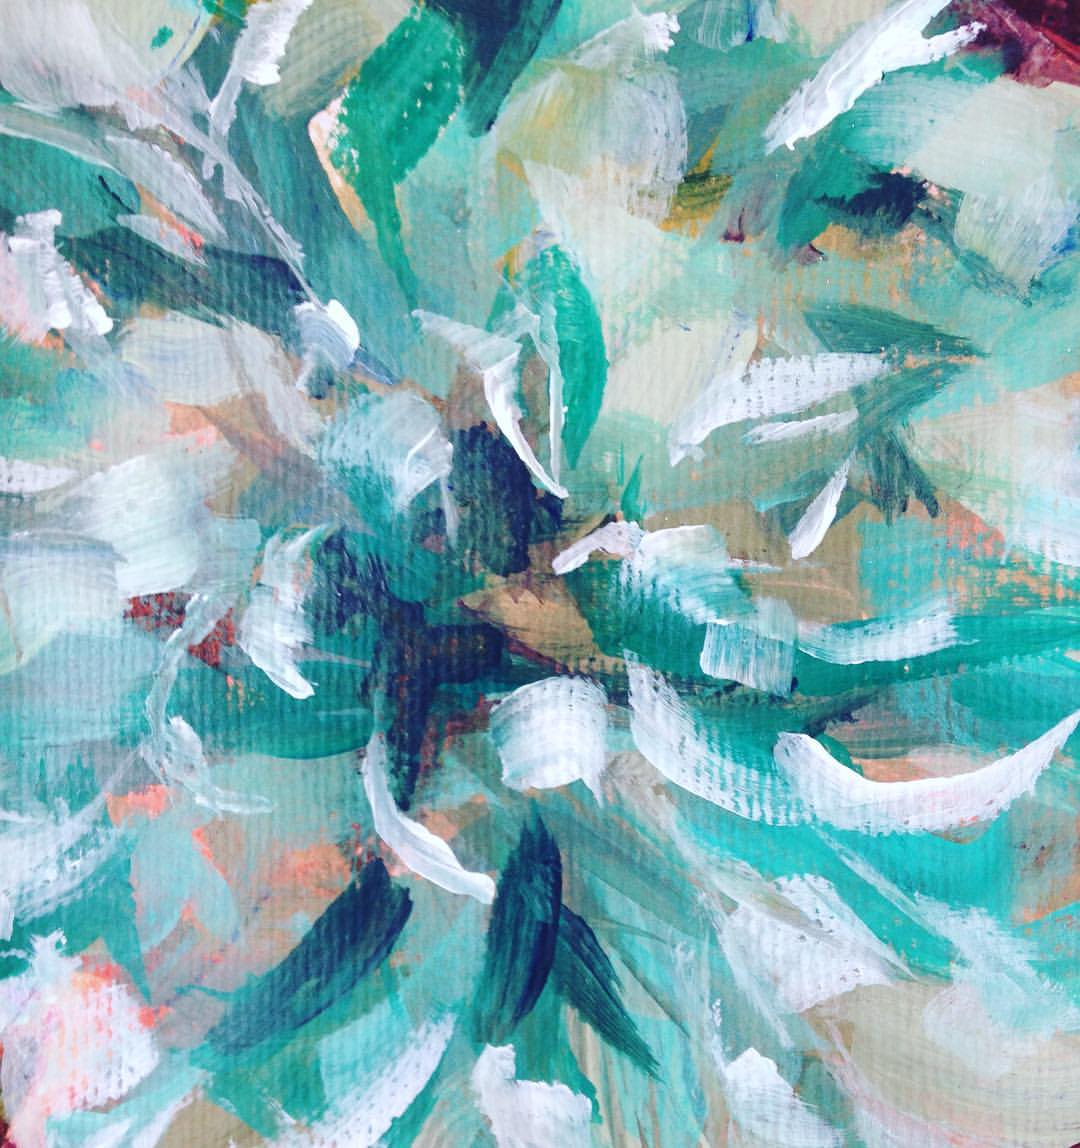 #painting #acrylicpainting #brushstrokes #brushwork #paint #acrylic #pattern #textiles #flower #pompom